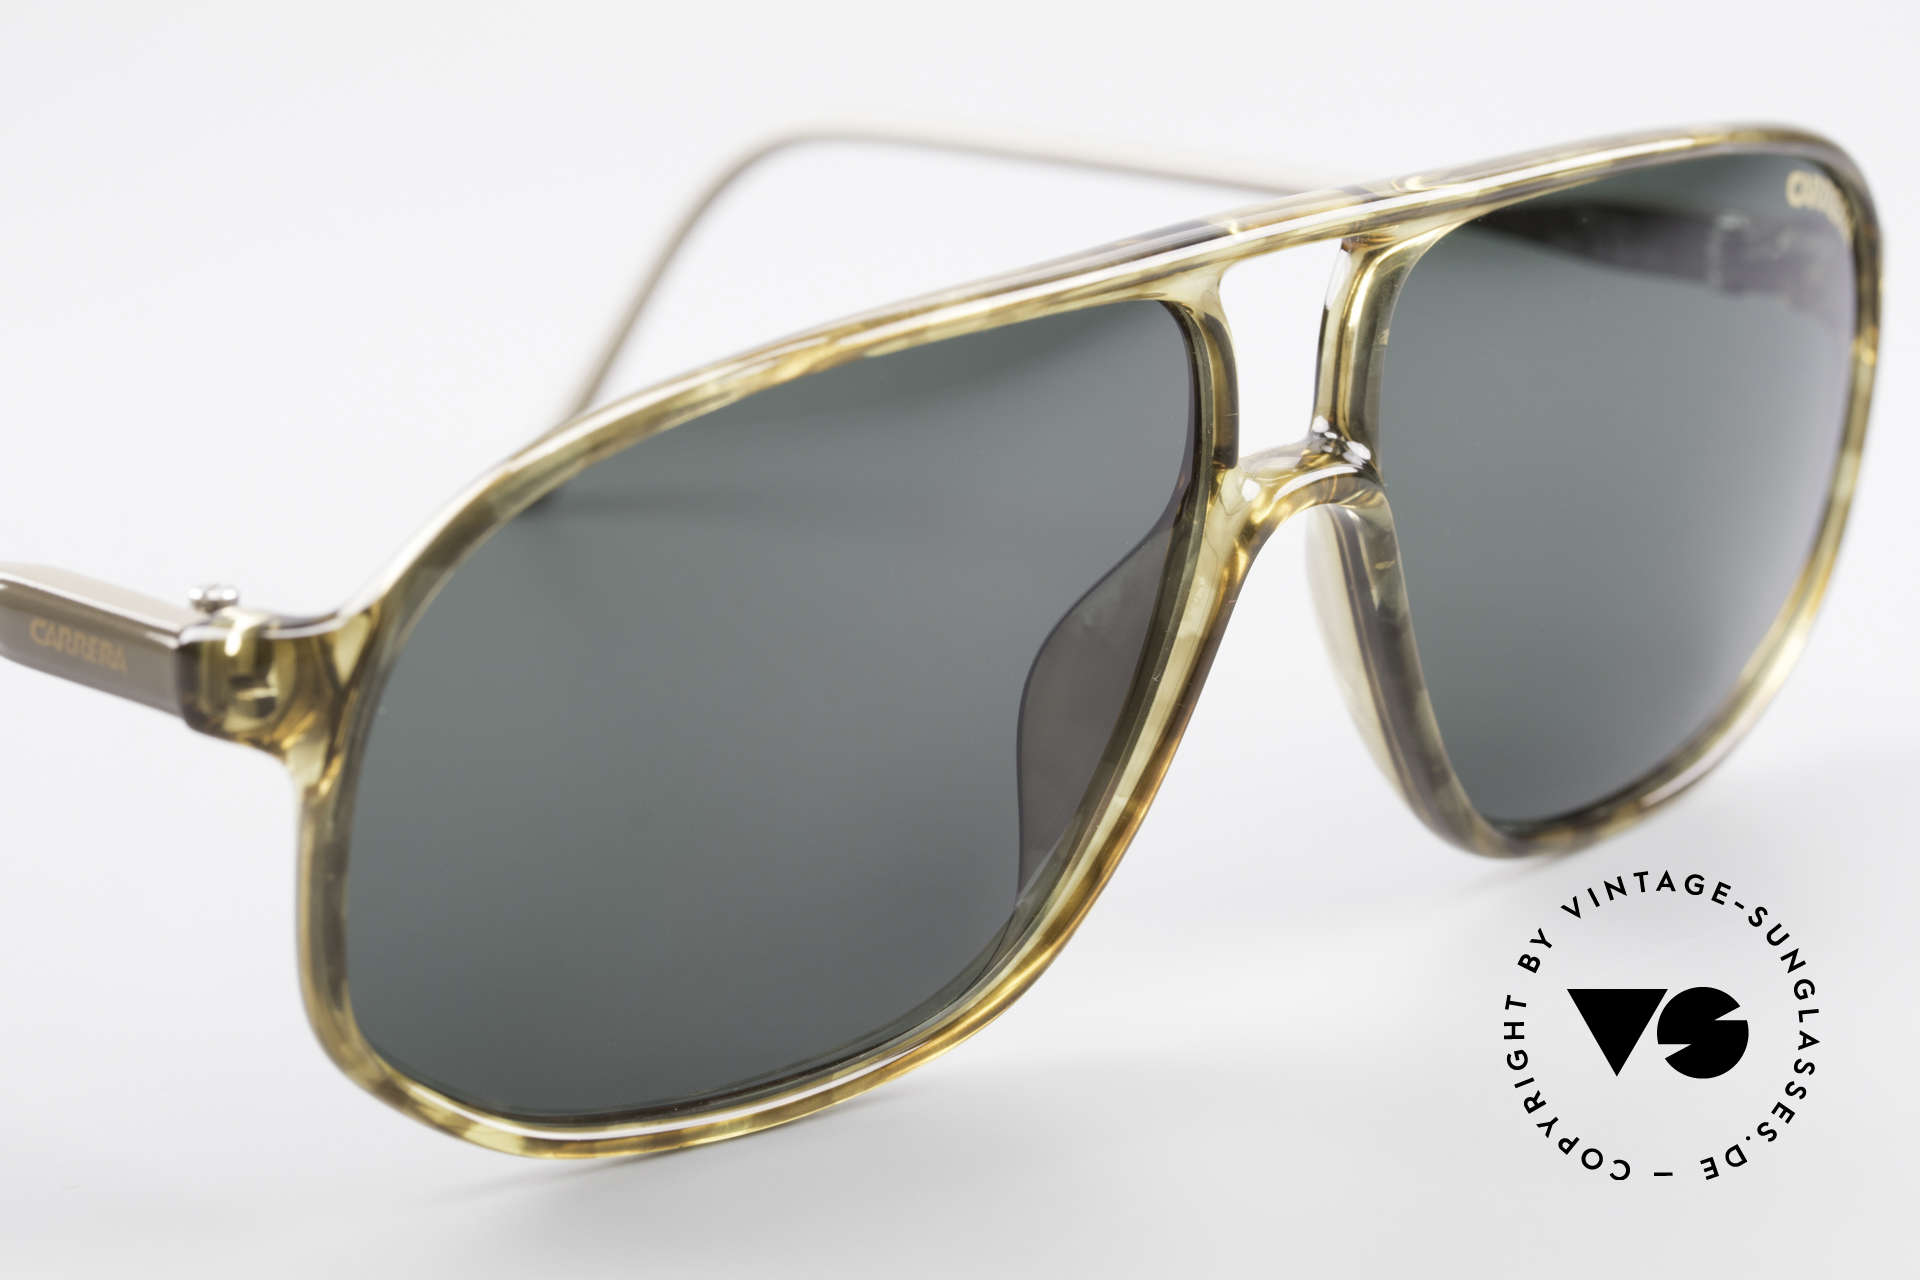 Carrera 5325 80's Carrera Sunglasses Optyl, NO RETRO shades, but an old ORIGINAL from 1989!, Made for Men